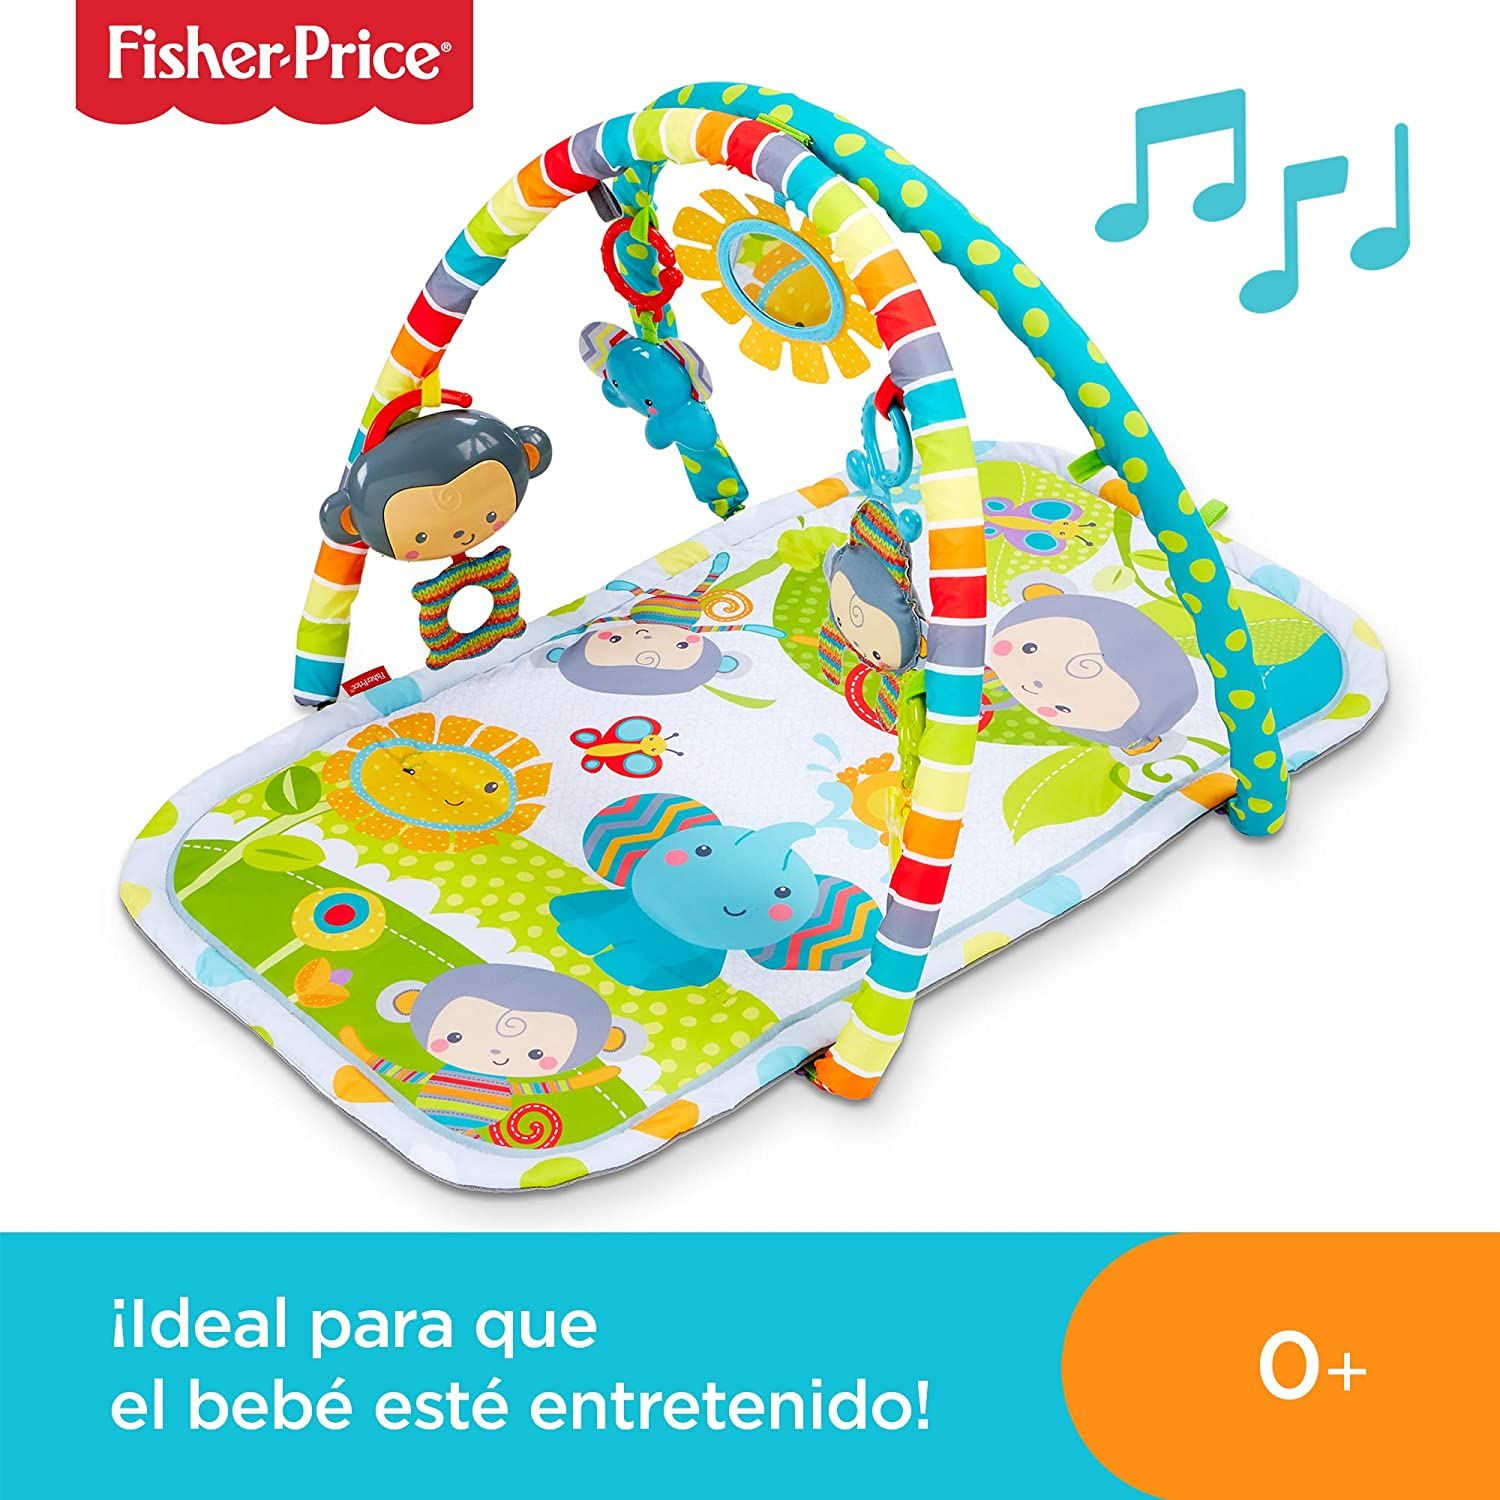 Fisher-Price Gimnasio musical monitos divertidos, manta de juego para bebé (Mattel CLJ42): Amazon.es: Bebé